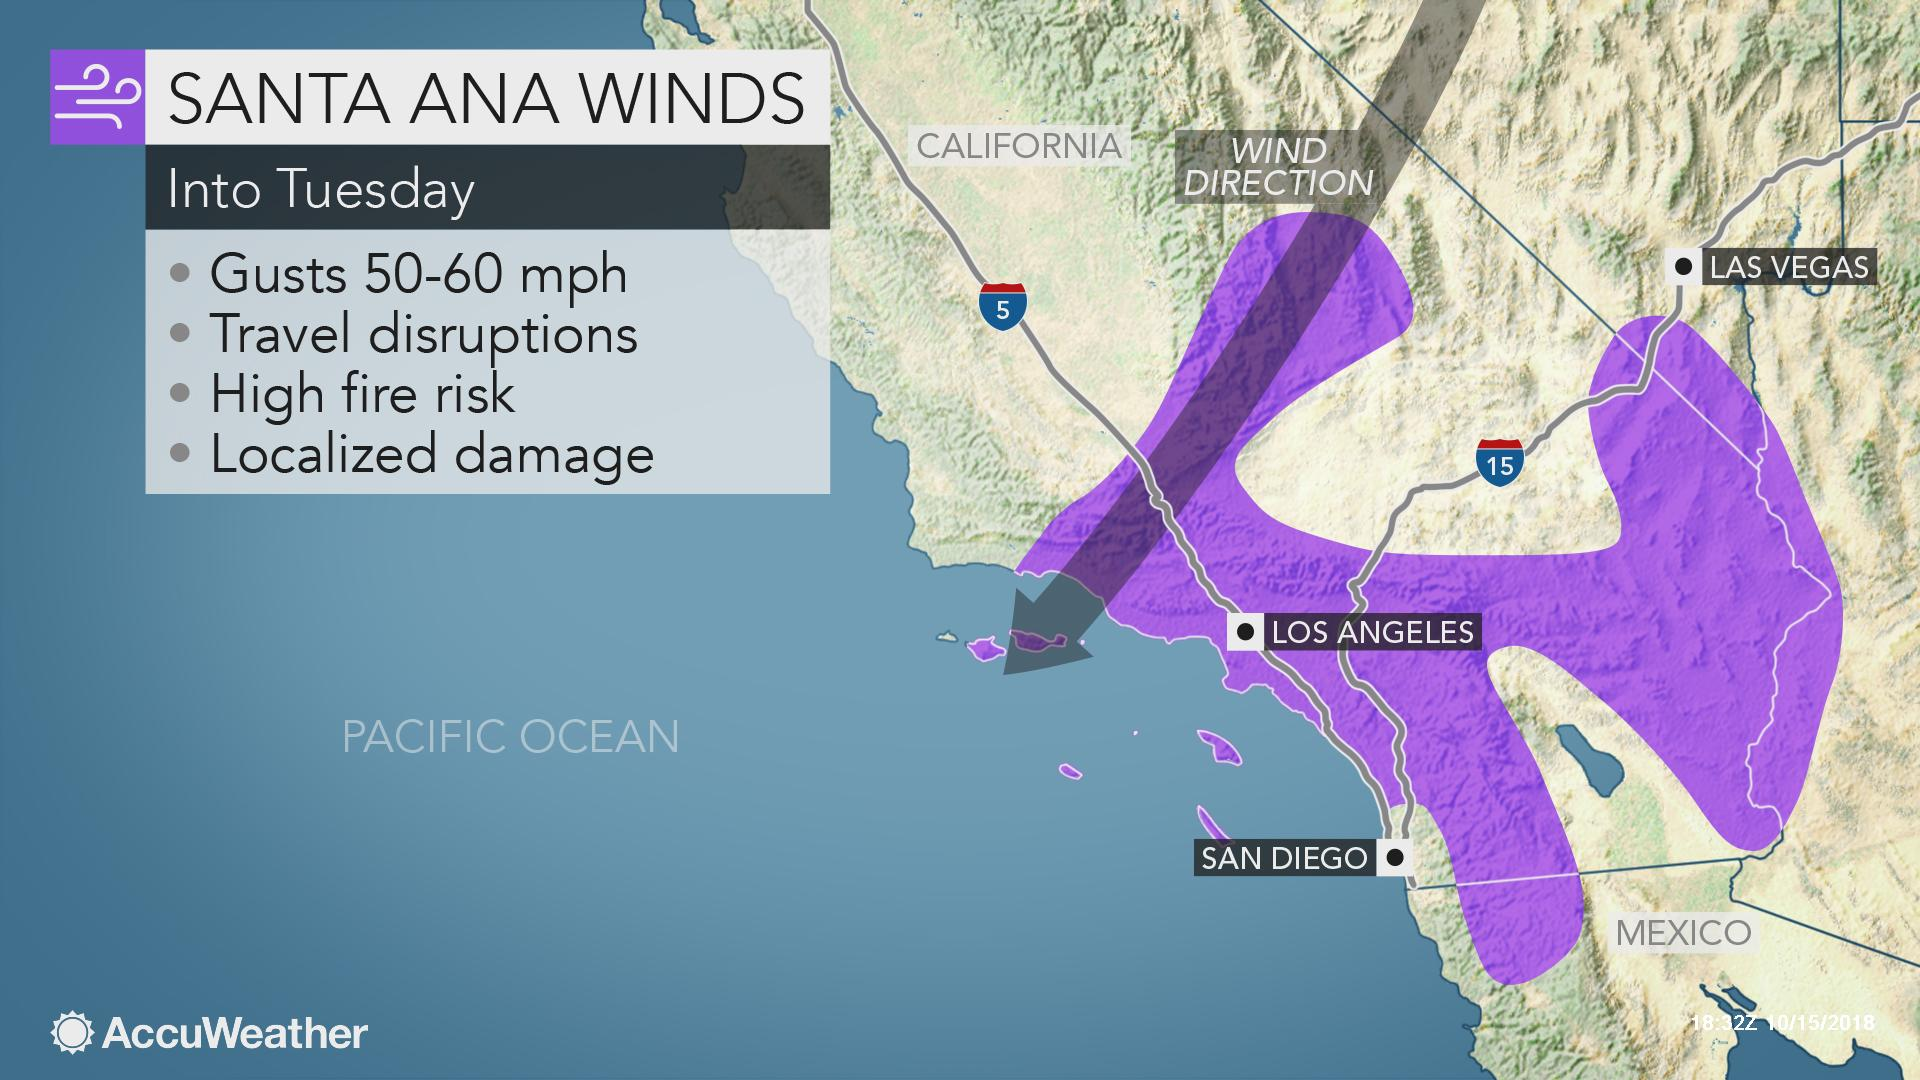 Santa Ana winds to elevate fire danger in Southern ... on las vegas ca map, la purisima mission ca map, palo alto ca map, downey ca map, palm desert ca map, newport harbor ca map, puente hills ca map, n hollywood ca map, hacienda ca map, chicago ca map, seal beach ca map, fort worth ca map, ridgecrest ca map, san ysidro ca map, solano beach ca map, fresno ca map, fountain valley ca map, san bernardino ca map, anaheim ca map, baldwin lake ca map,